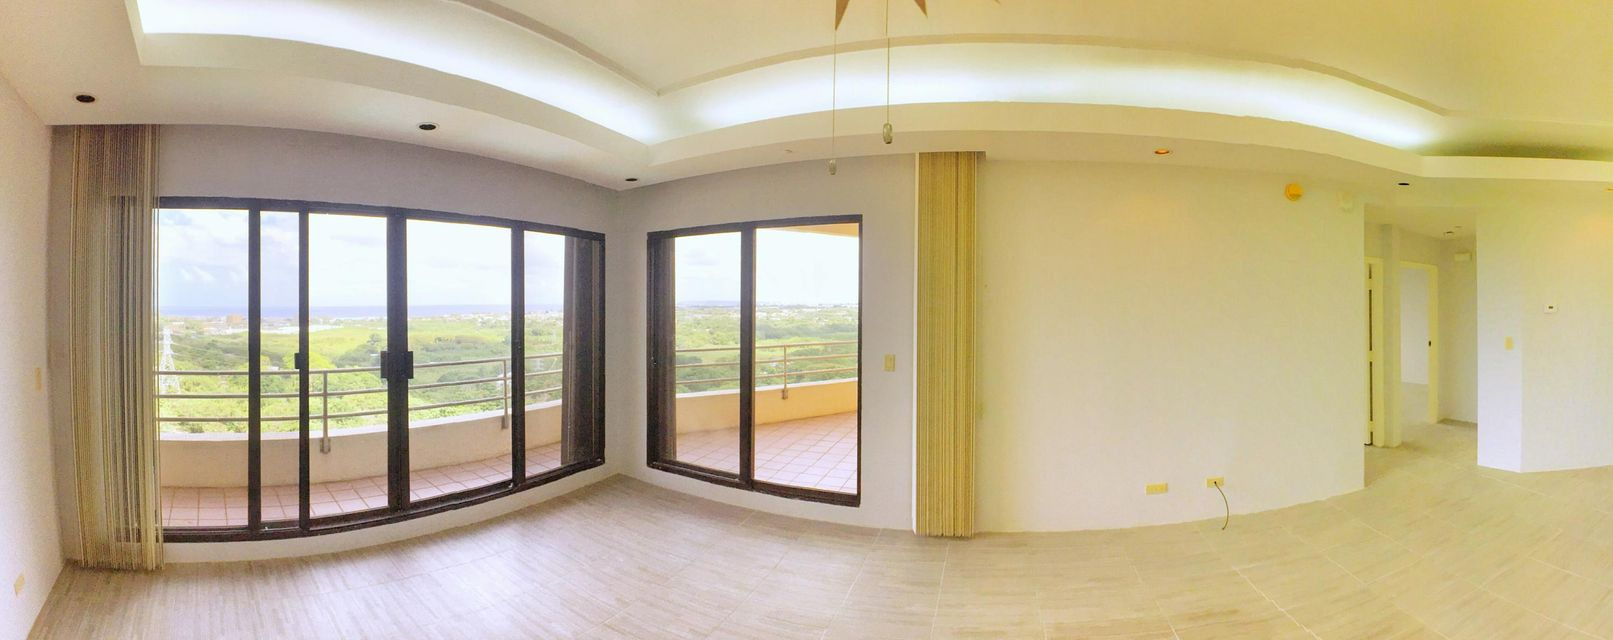 Condo / Townhouse for Rent at Holiday Tower Condo 788 Route 4 , #1006 Holiday Tower Condo 788 Route 4 , #1006 Sinajana, Guam 96910